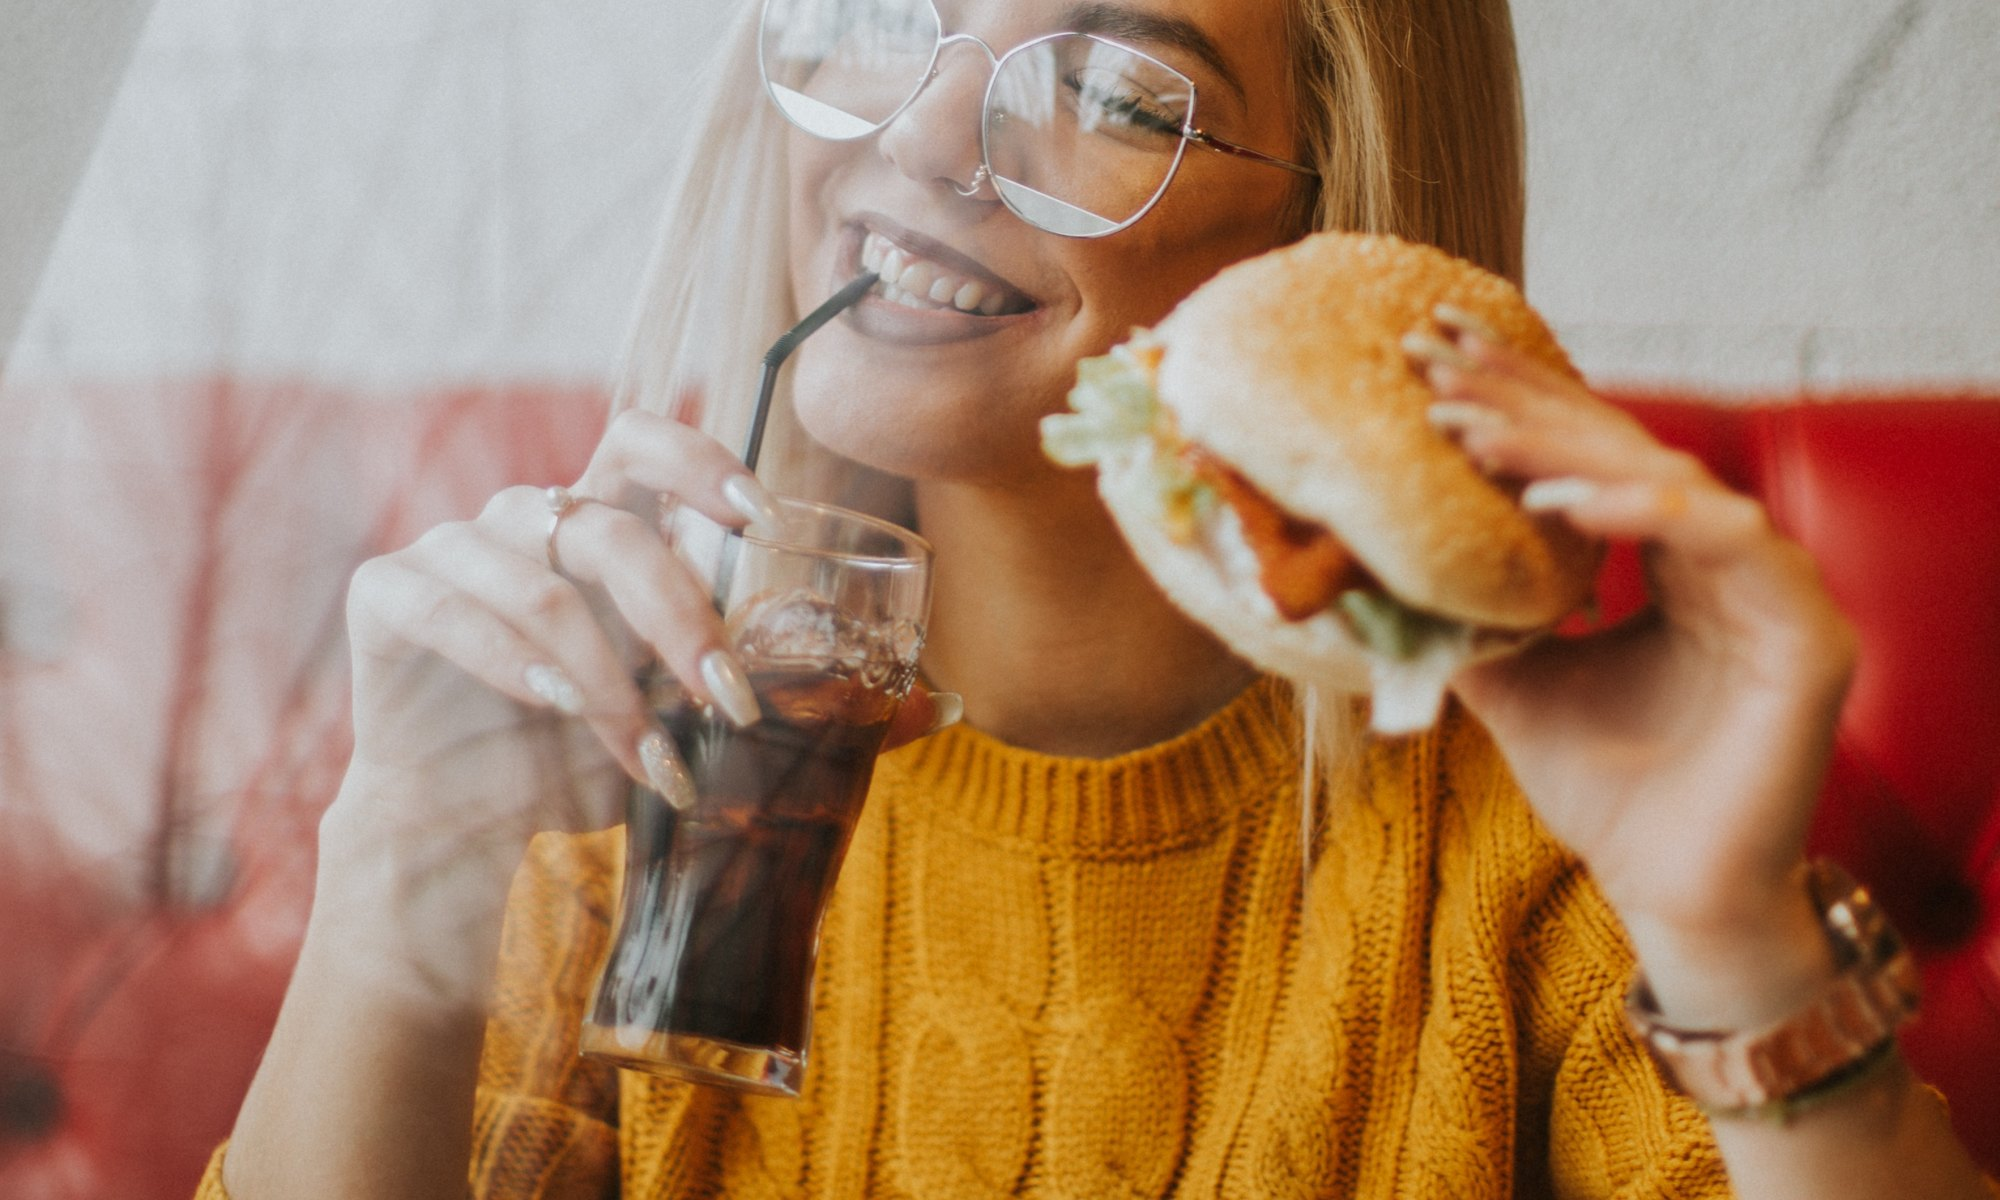 Blonde woman smiling and eating a burger and fries and drinking coke